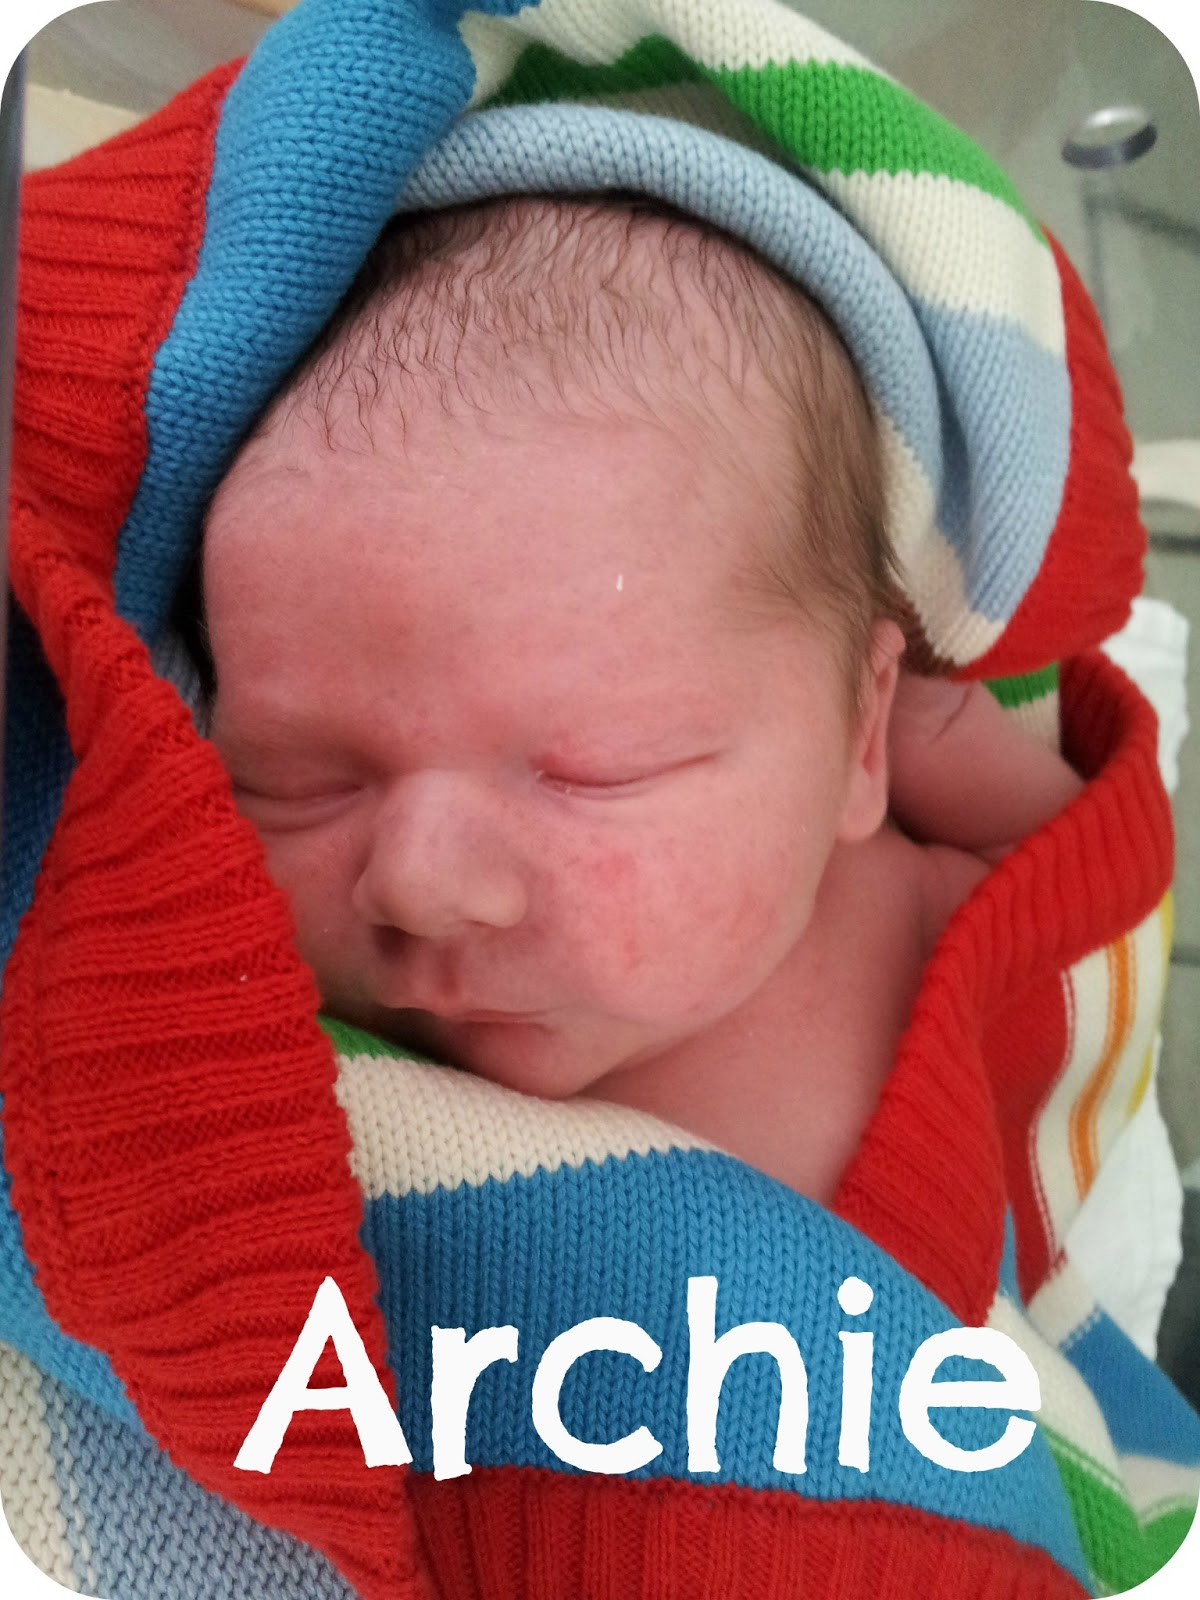 Baby Archie